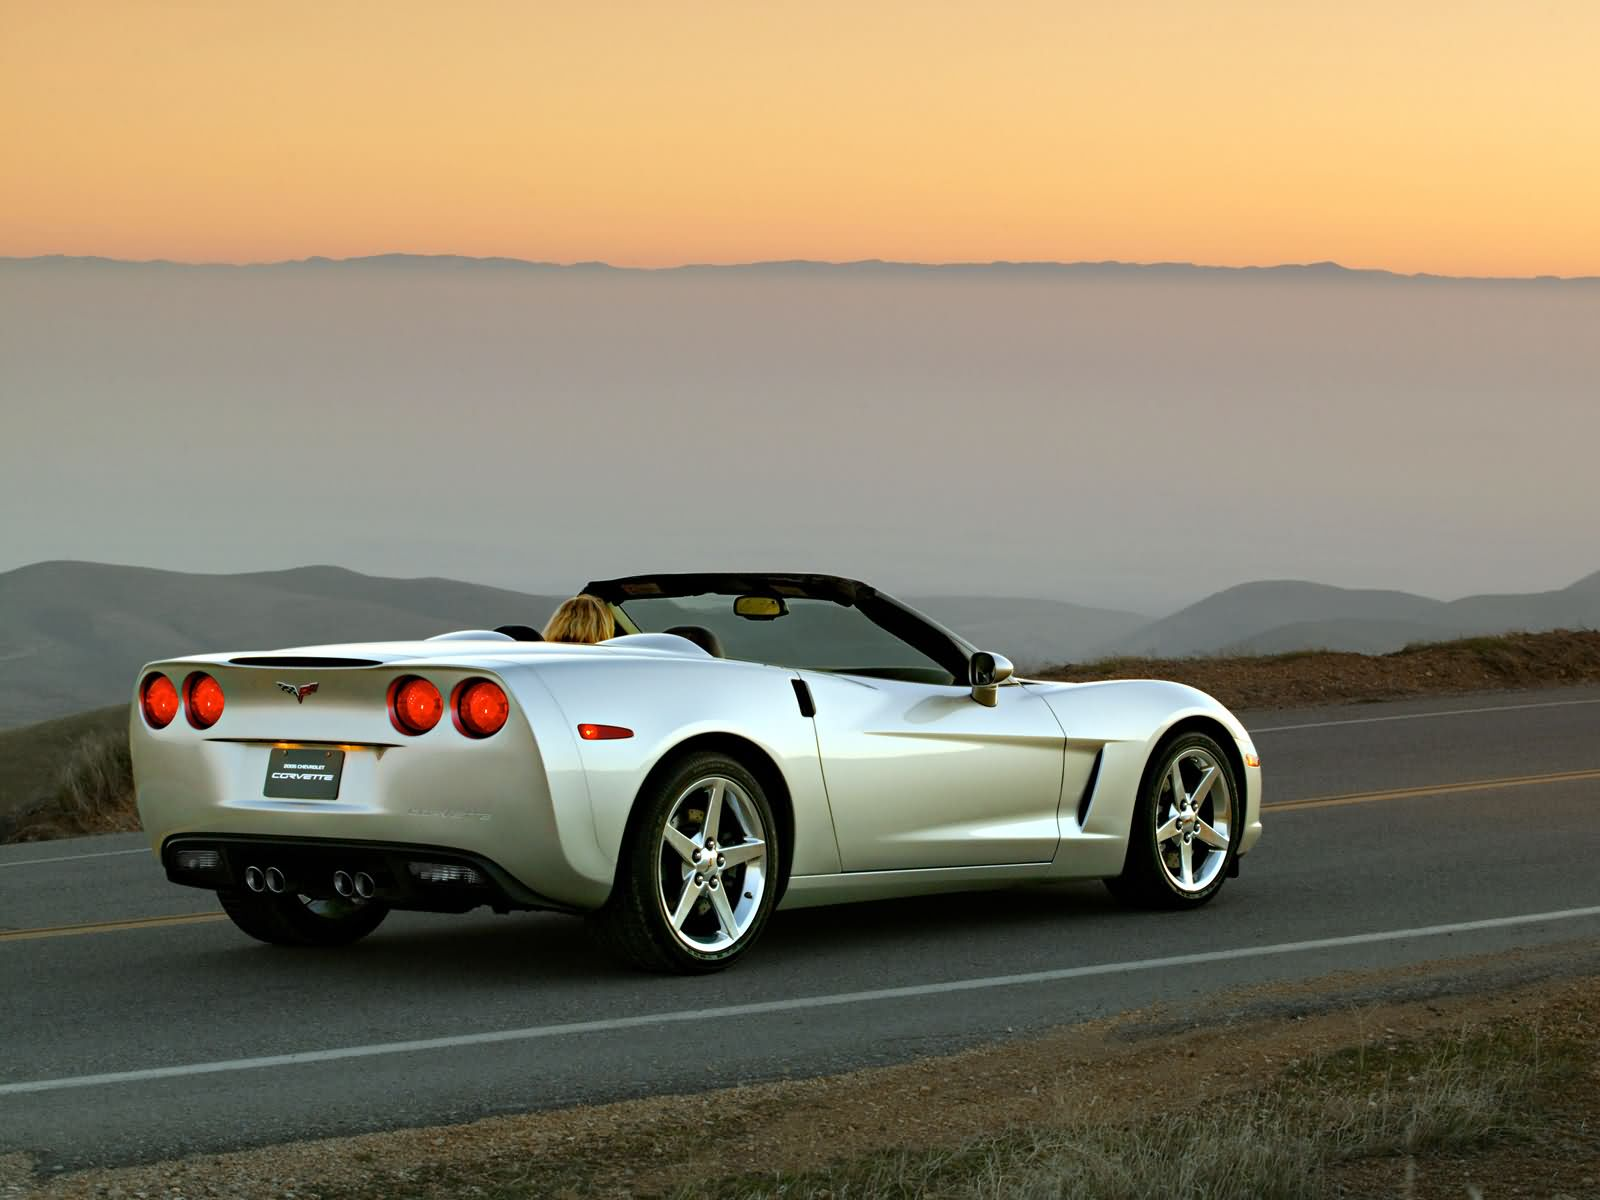 chevrolet corvette c6 convertible picture 7301 chevrolet photo gallery. Black Bedroom Furniture Sets. Home Design Ideas